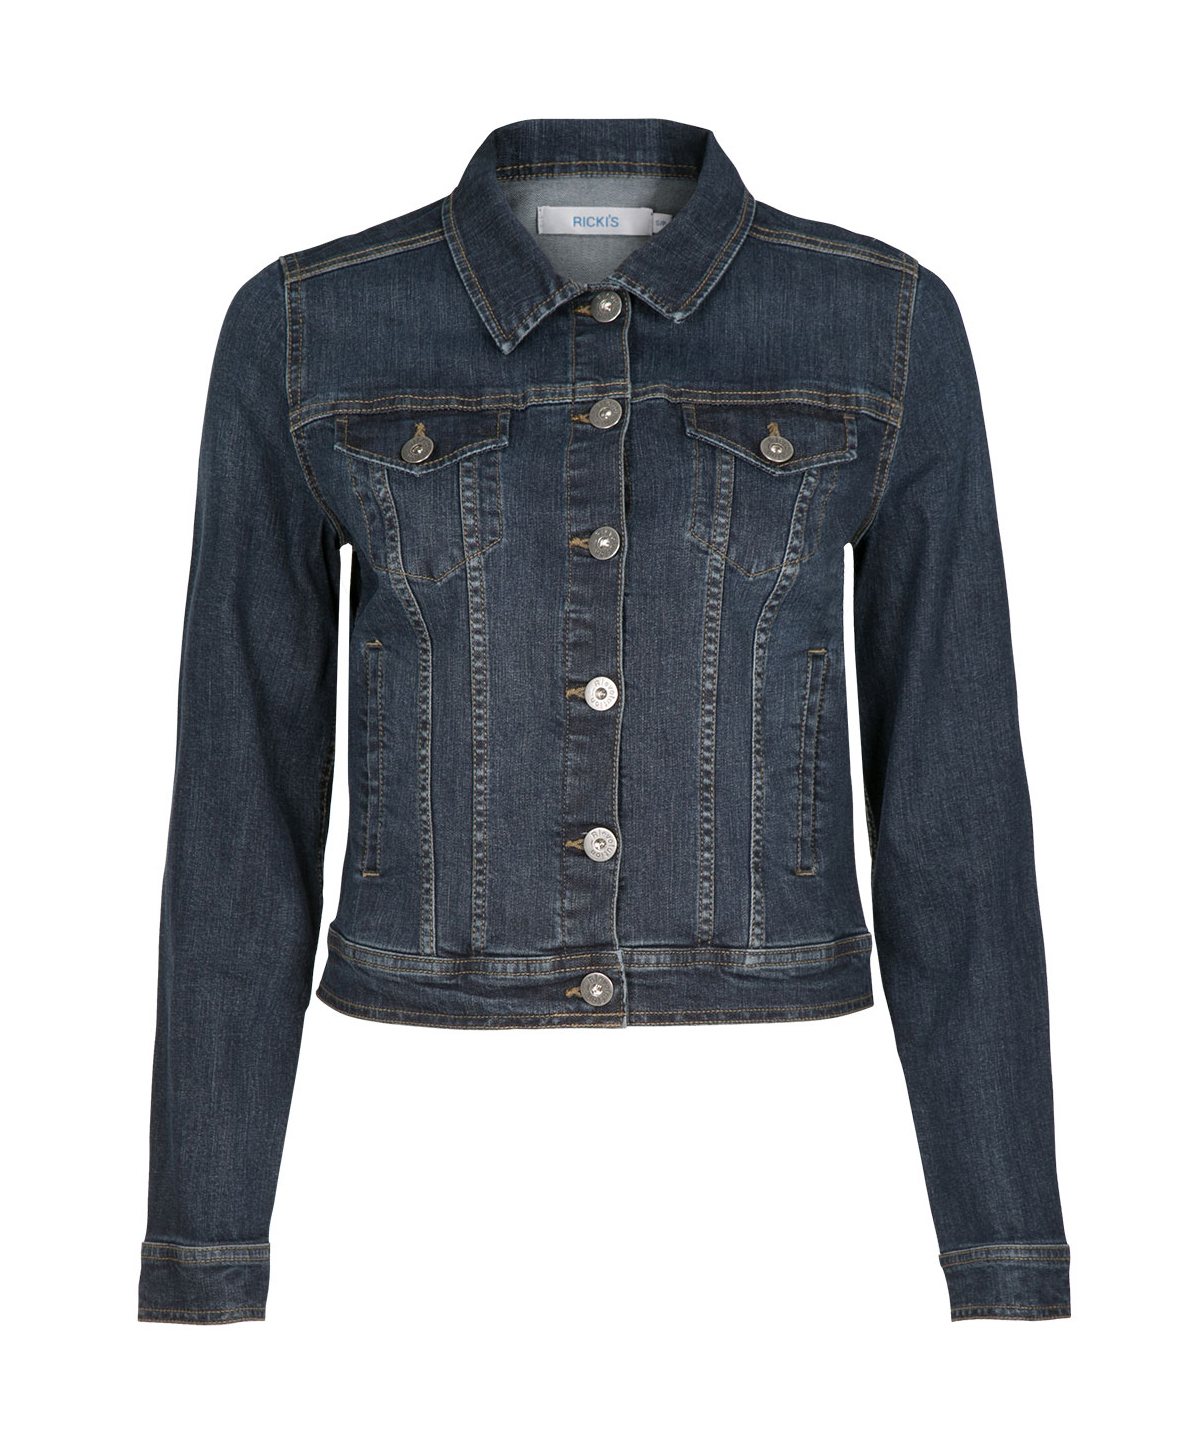 Dark Wash Jean Jacket | Rickis